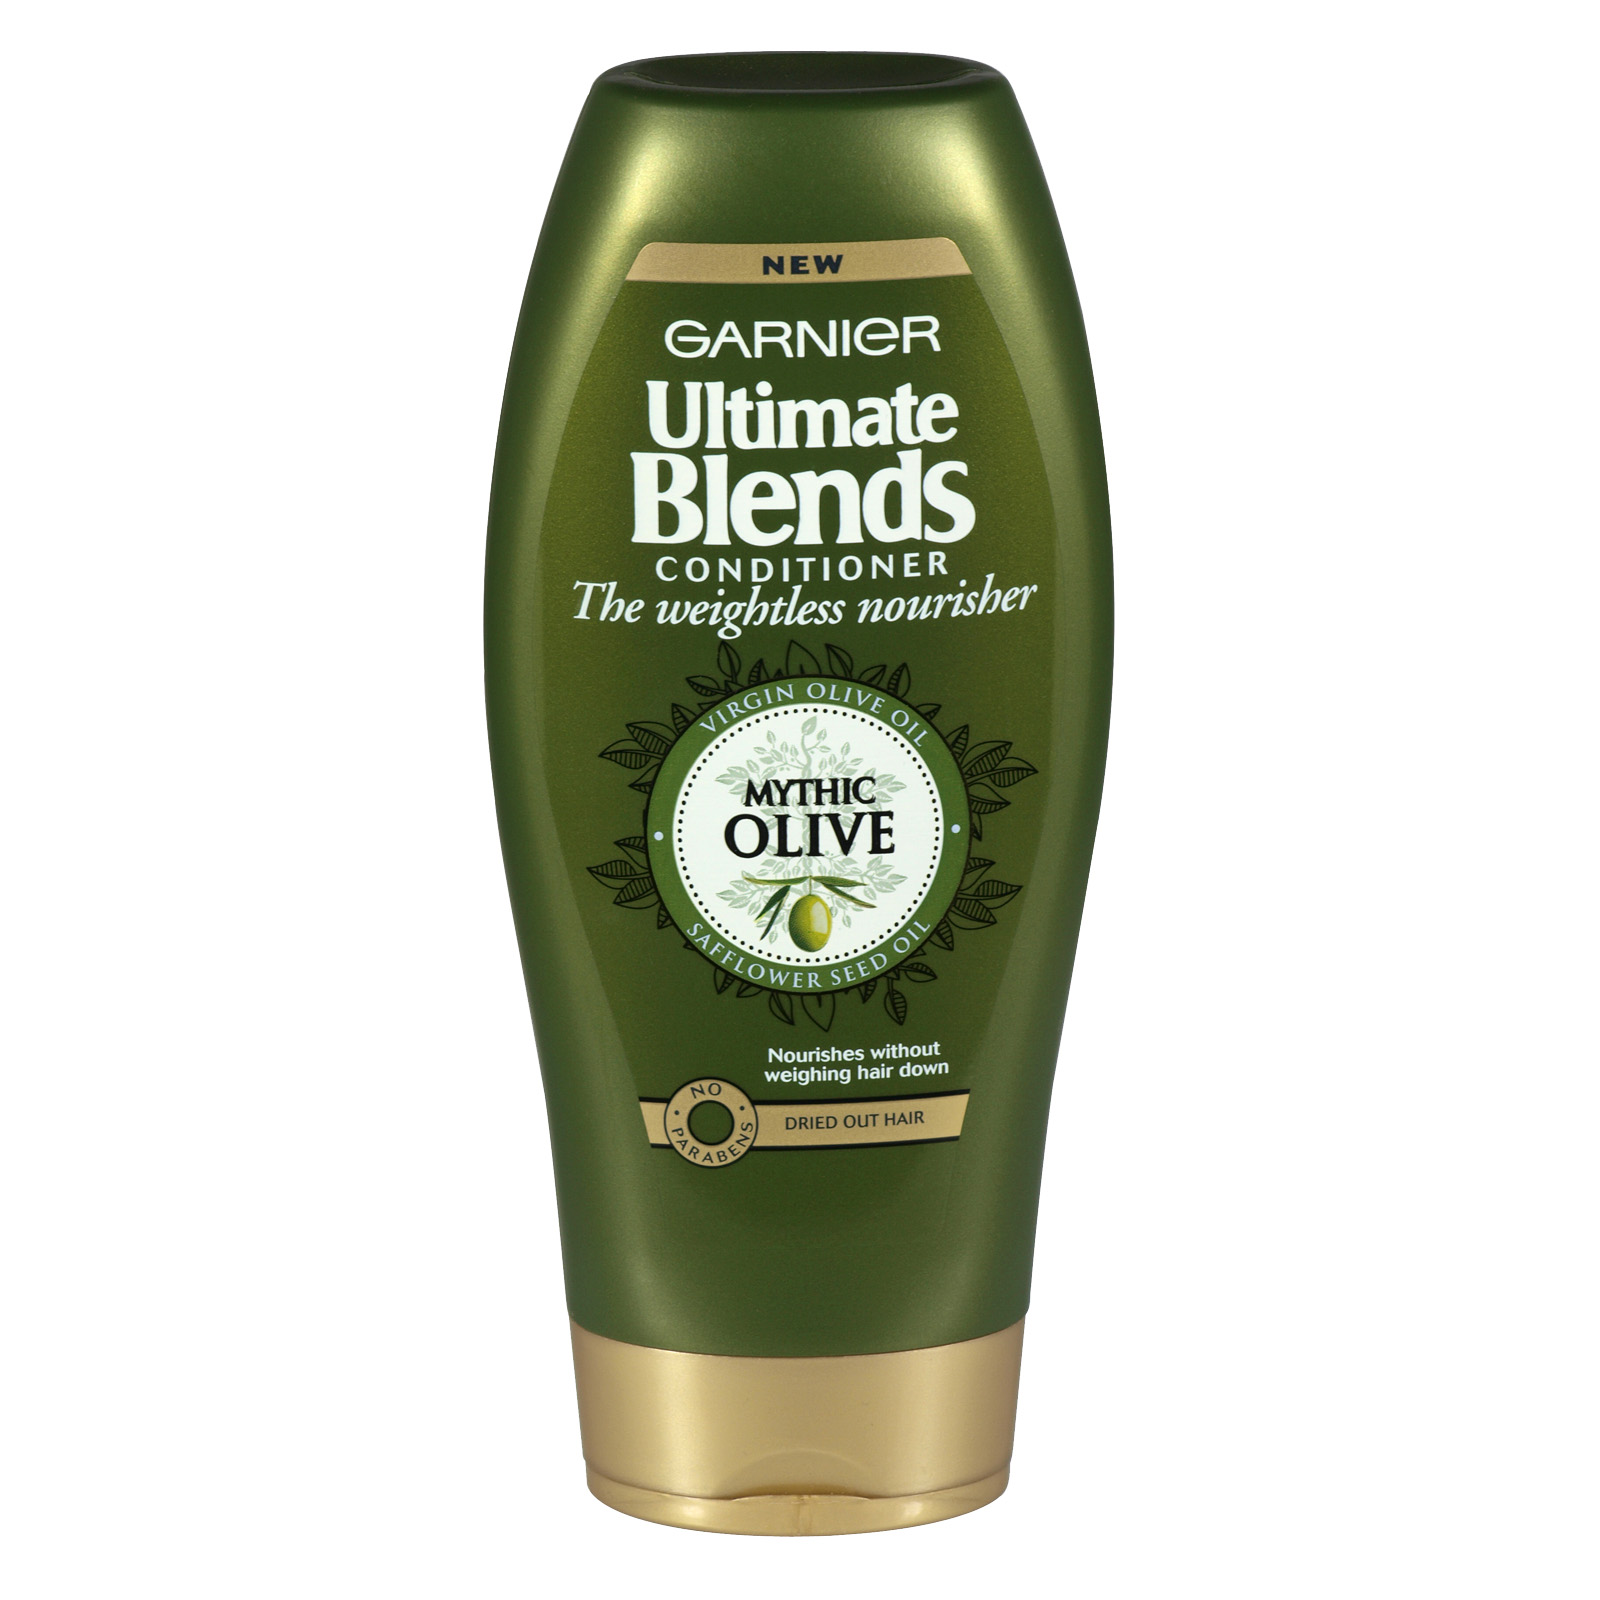 GARNIER ULTIMATE BLENDS 400ML COND MYTHIC OLIVE NOURISHING REPAIR X6